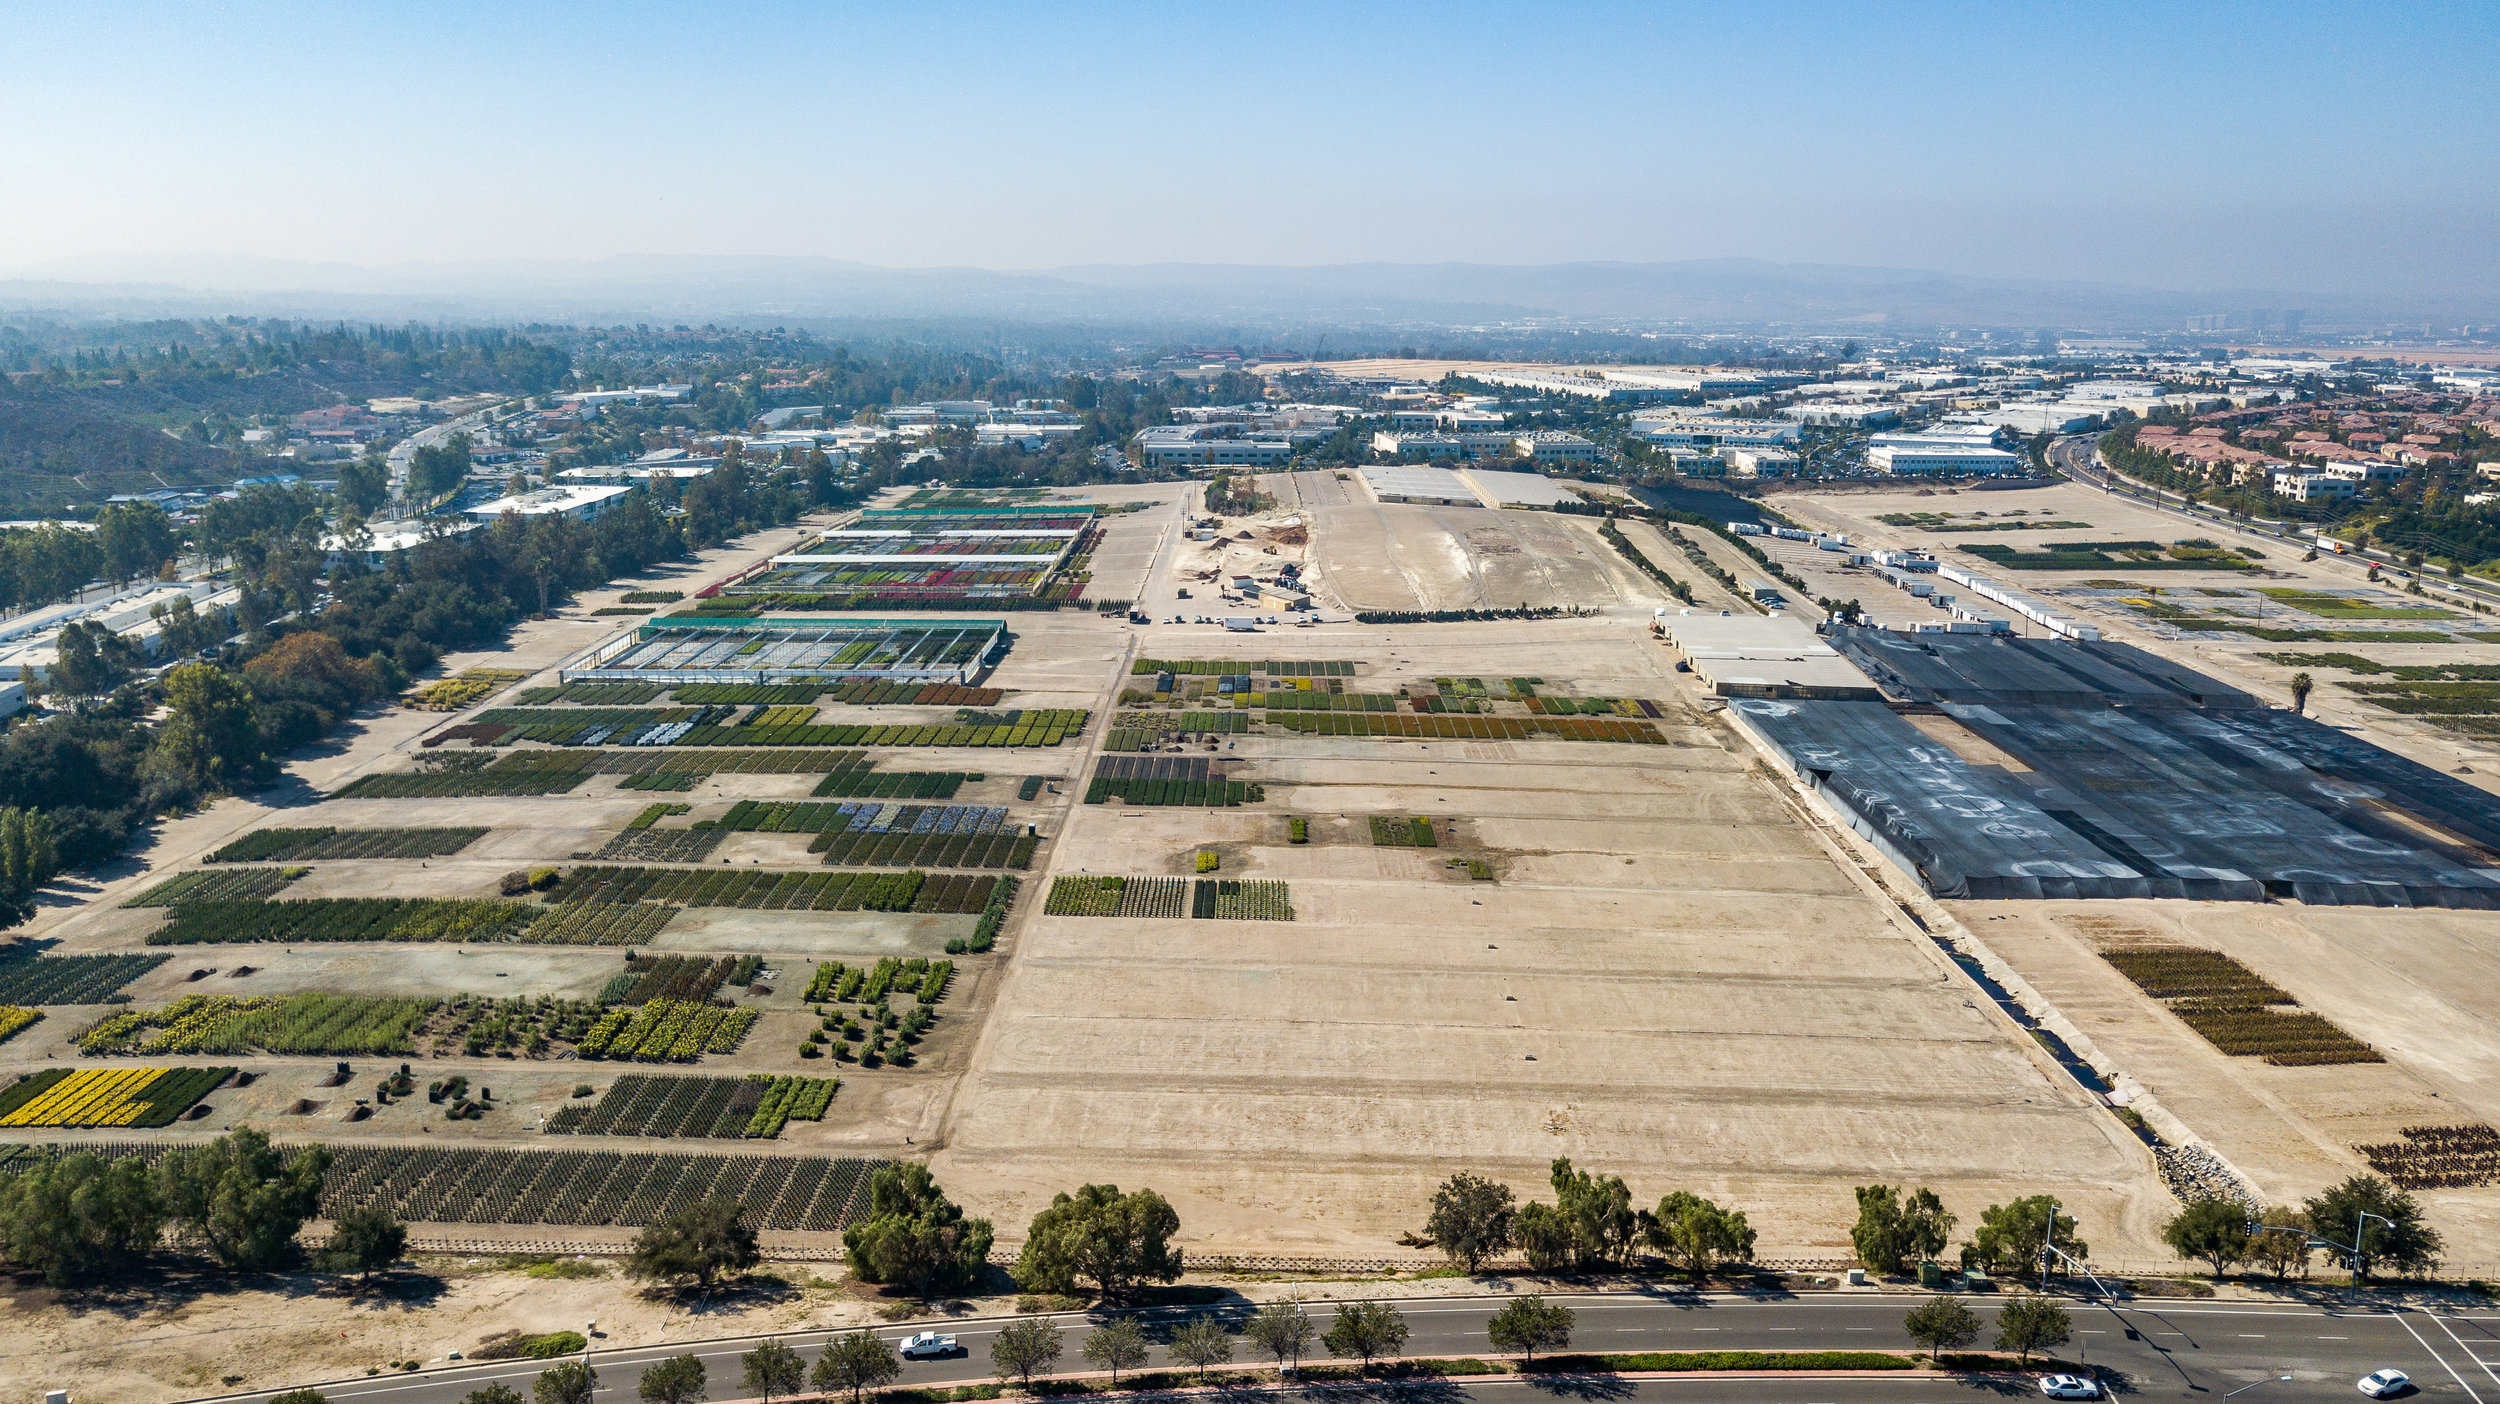 Nakase Nursery Site Overview